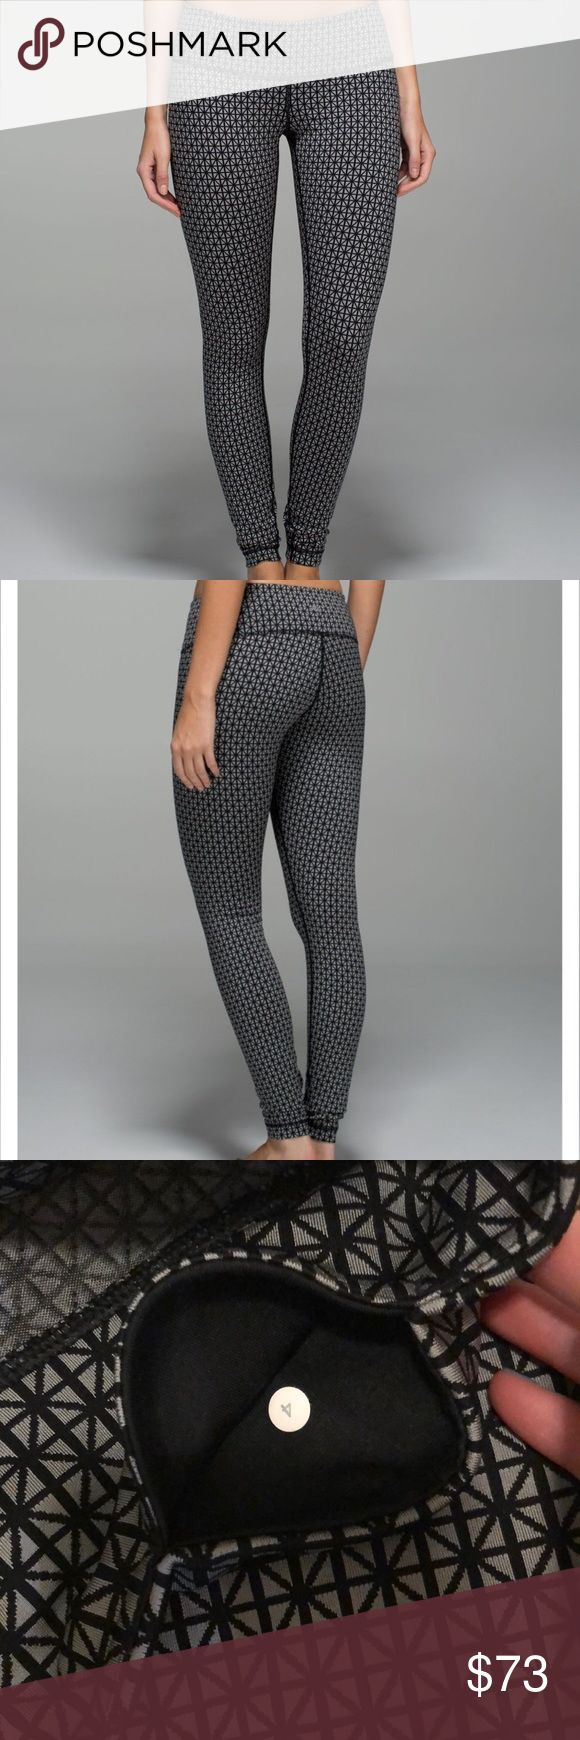 5419a672326e07 Lululemon Wunder Under Pant *Full-On Luon Material: Full-On® Luon